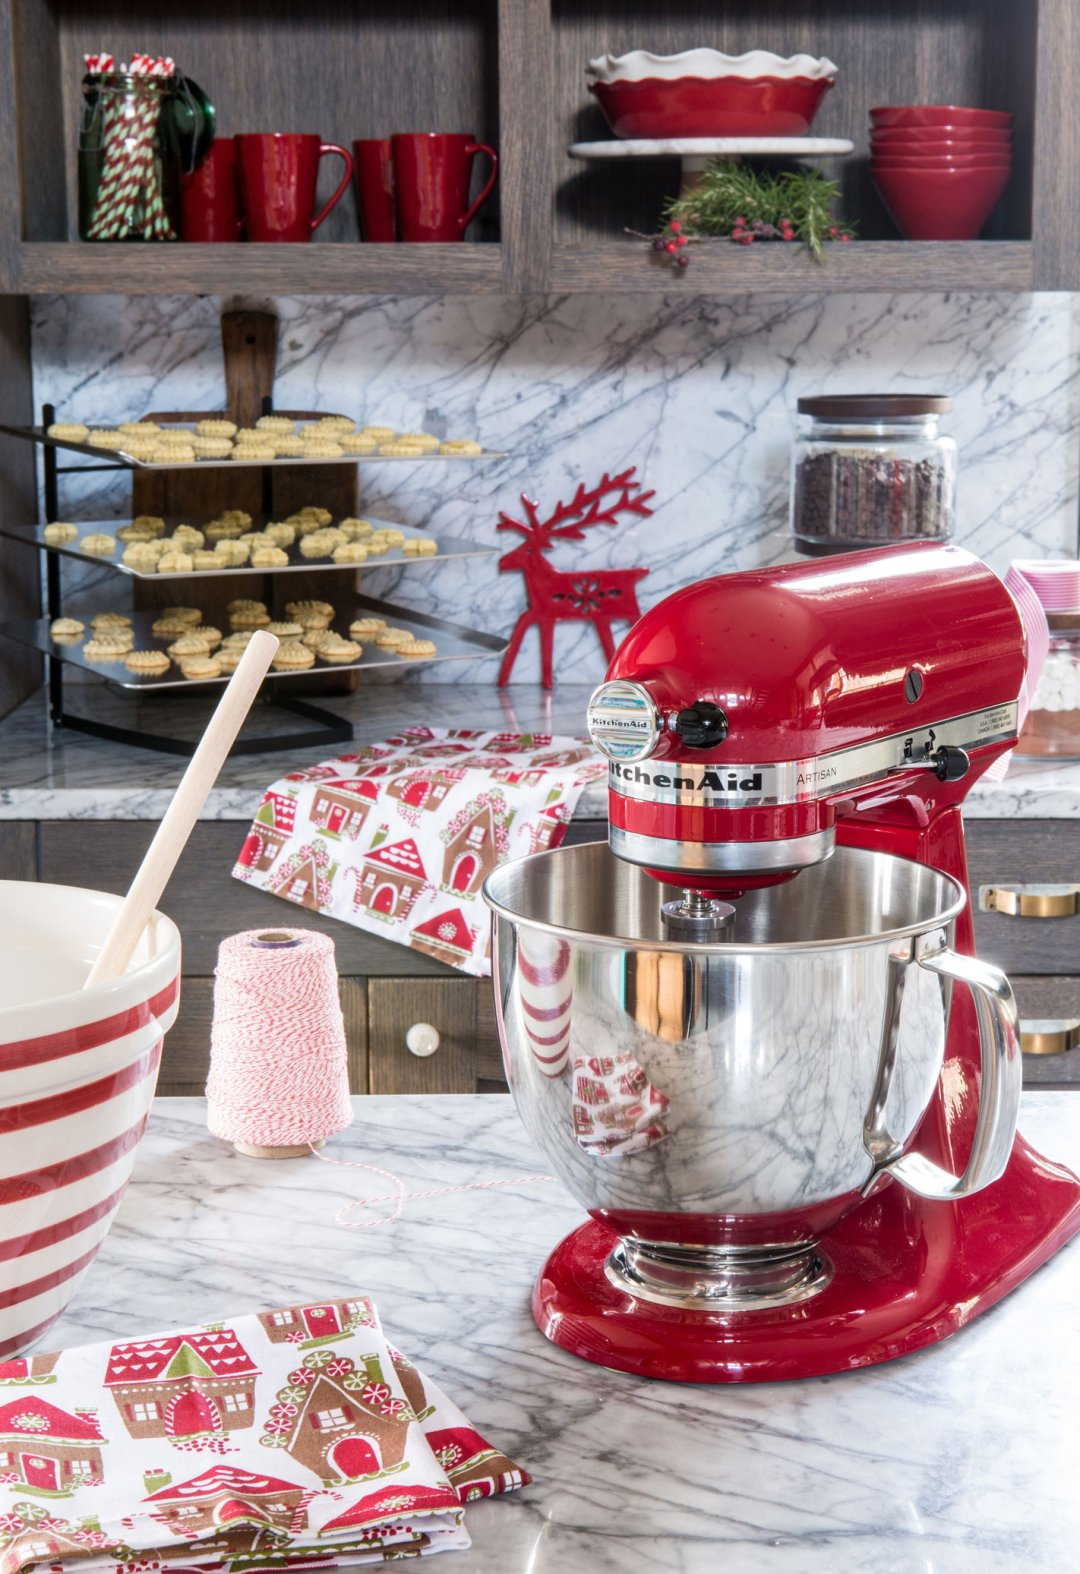 Red KitchenAid mixer on marble countertop in kitchen decorated for Christmas